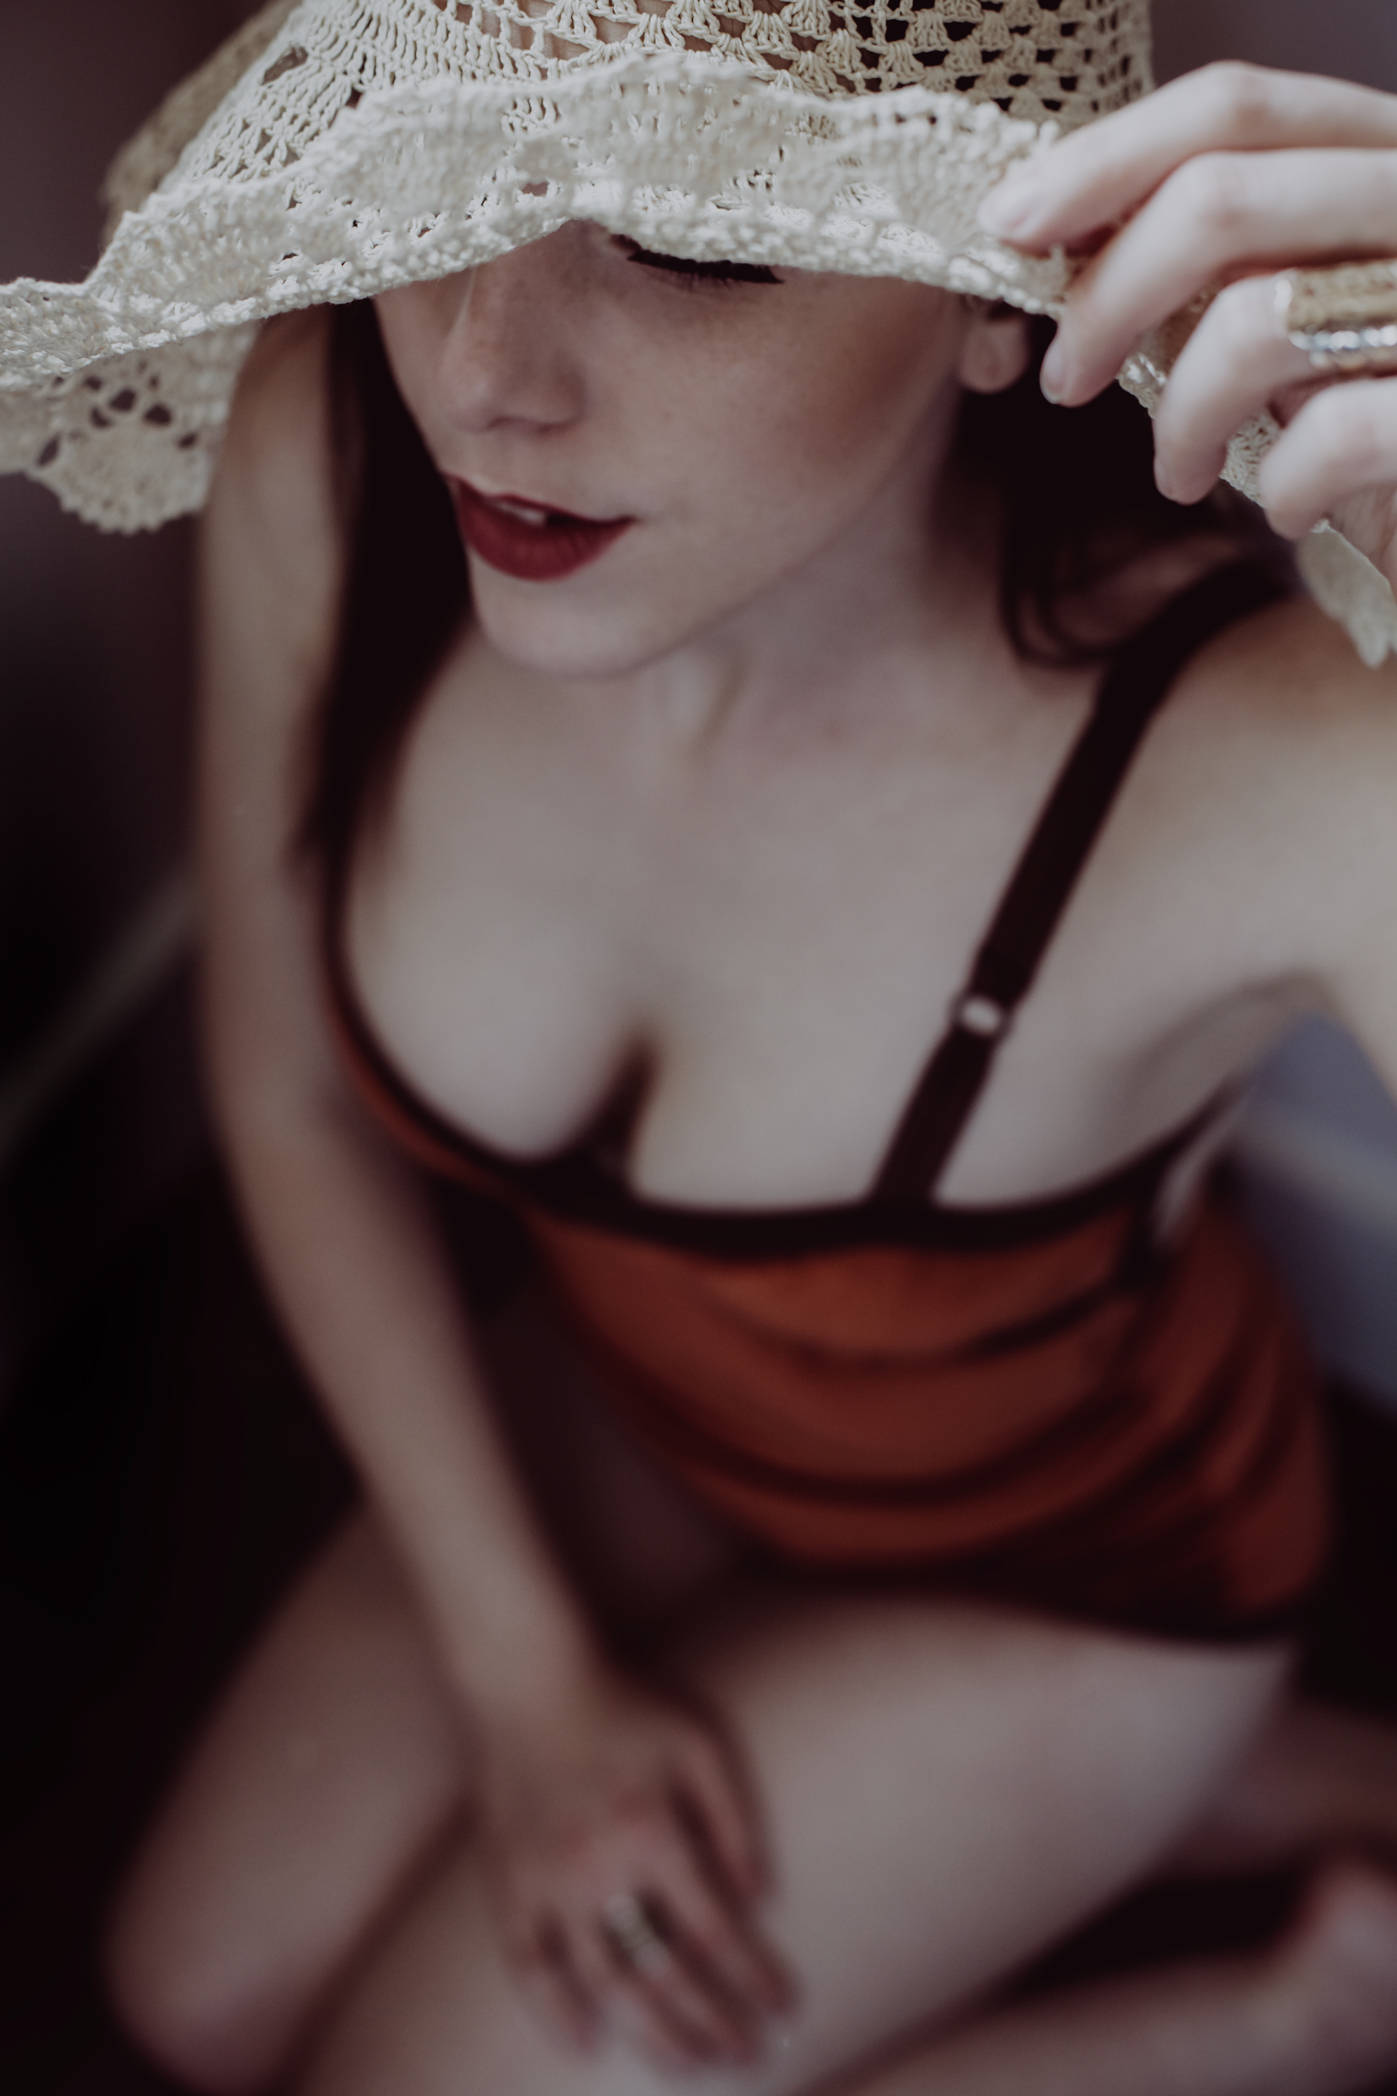 sexy boudoir session featuring a woman with bright red lips in Conifer, Colorado